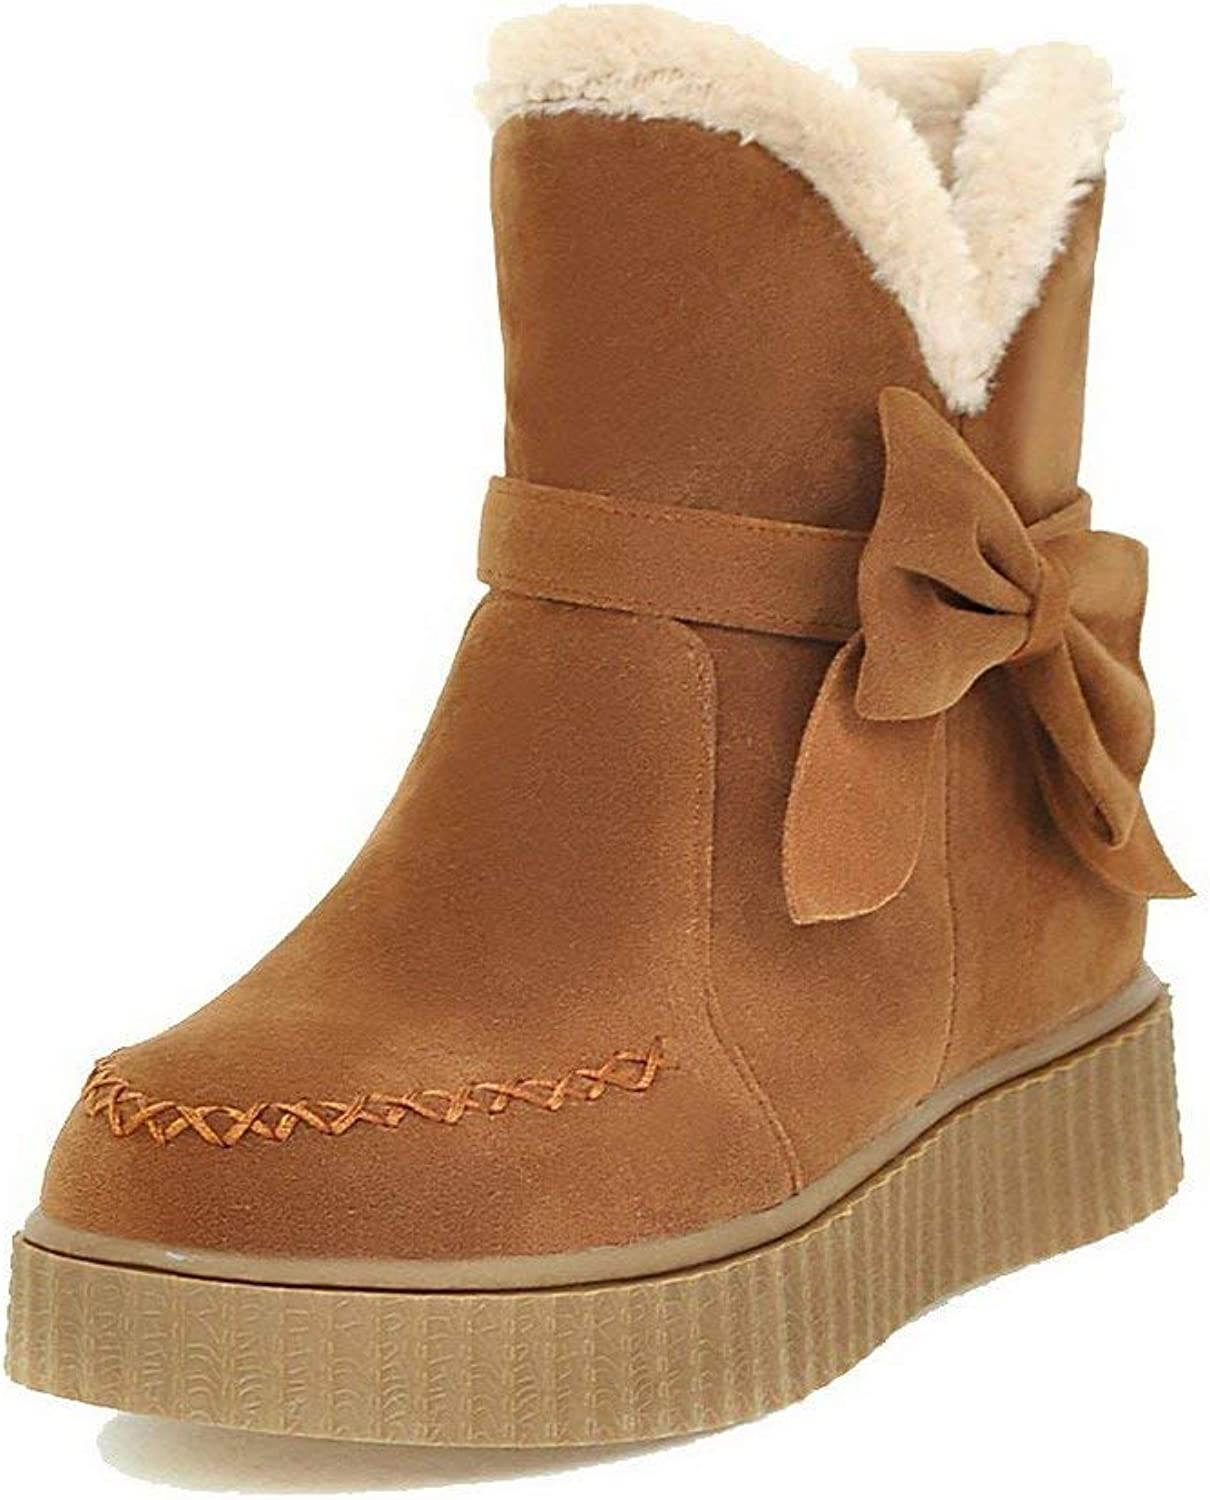 PRETTYHOMEL Women's Frosted Pull-On Round Closed Toe Low-Heels Solid Boots